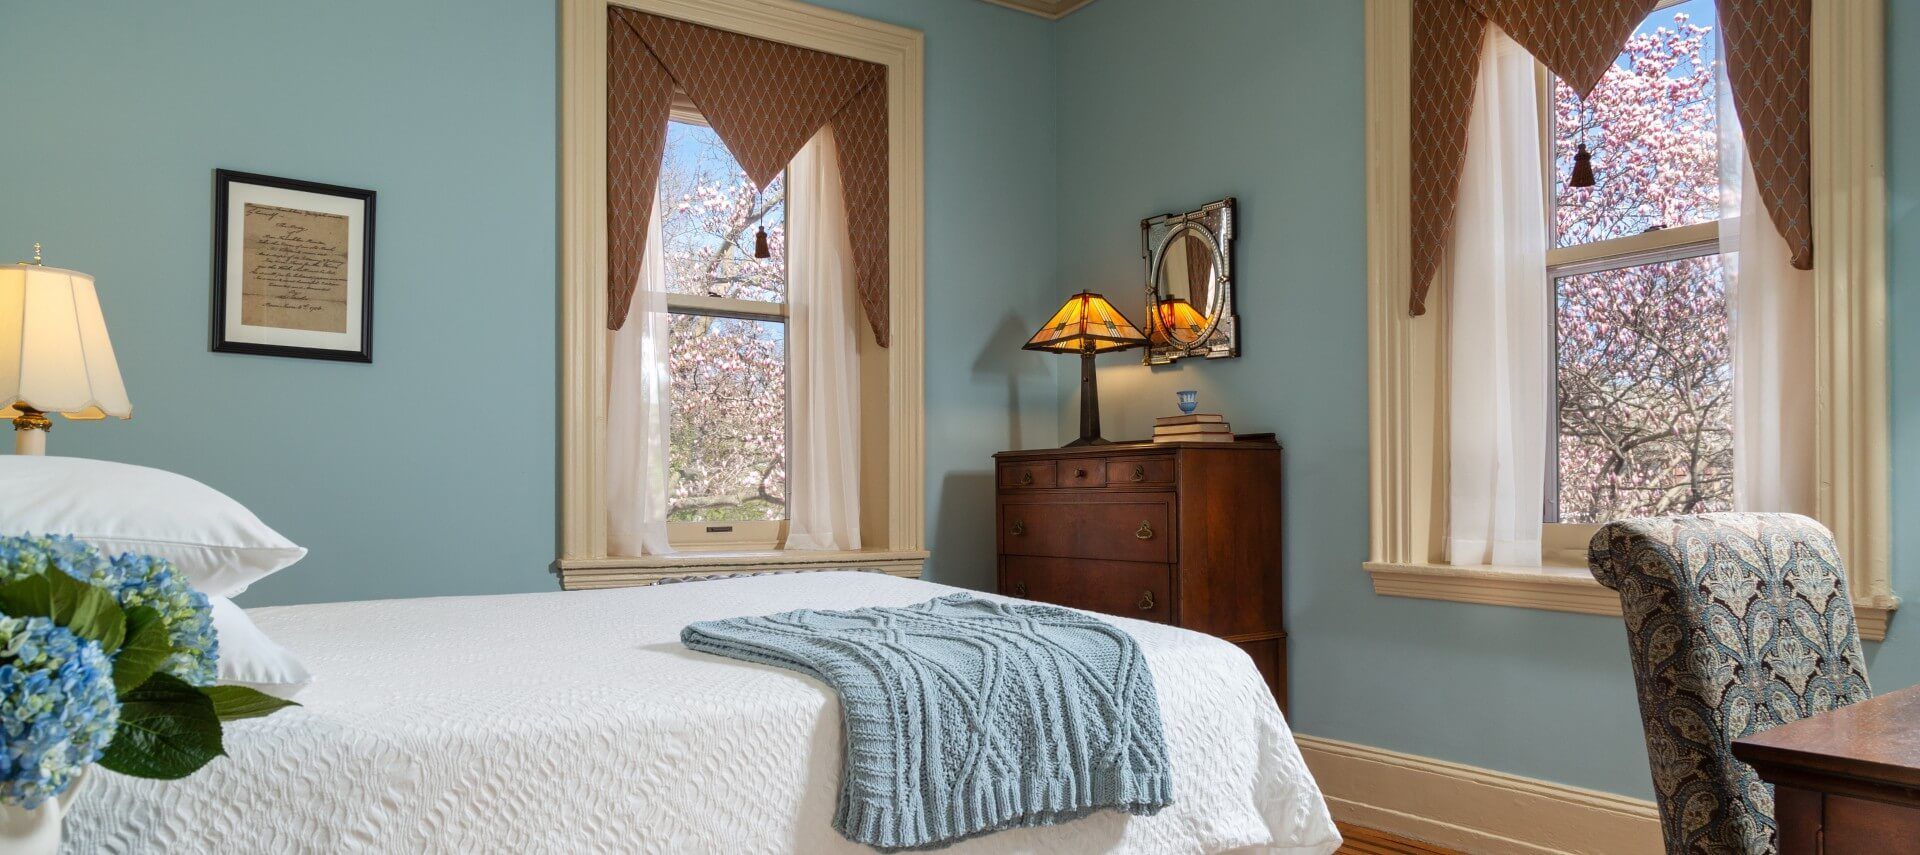 Guest room with white bed, two large windows, dresser and sitting desk with chair